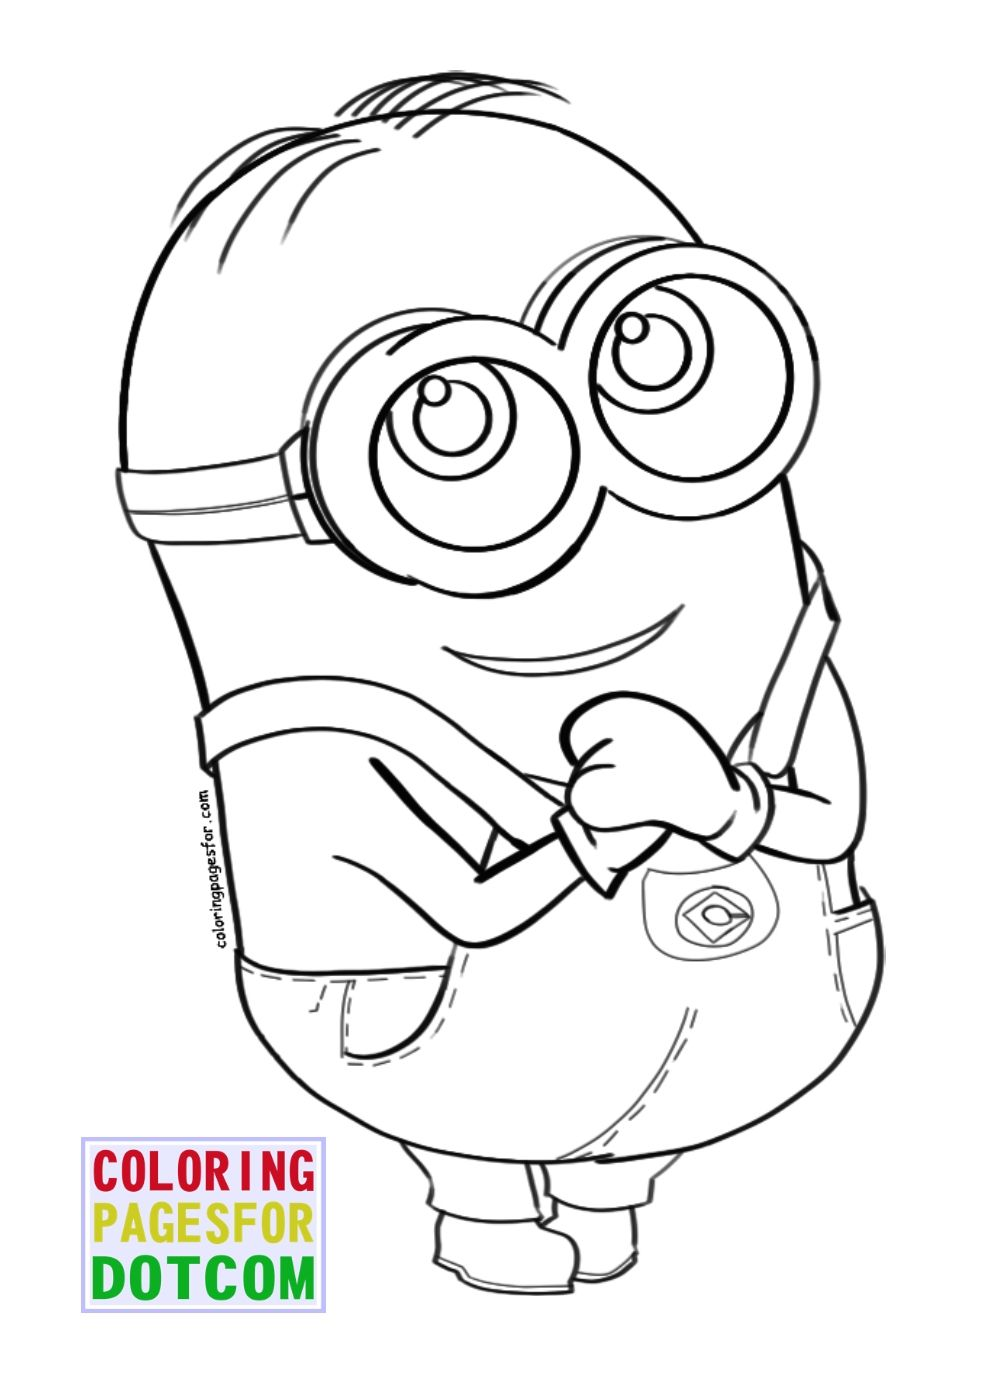 graphic relating to Printable Minion Coloring Page named absolutely free printable minion coloring internet pages 06 minions Minion